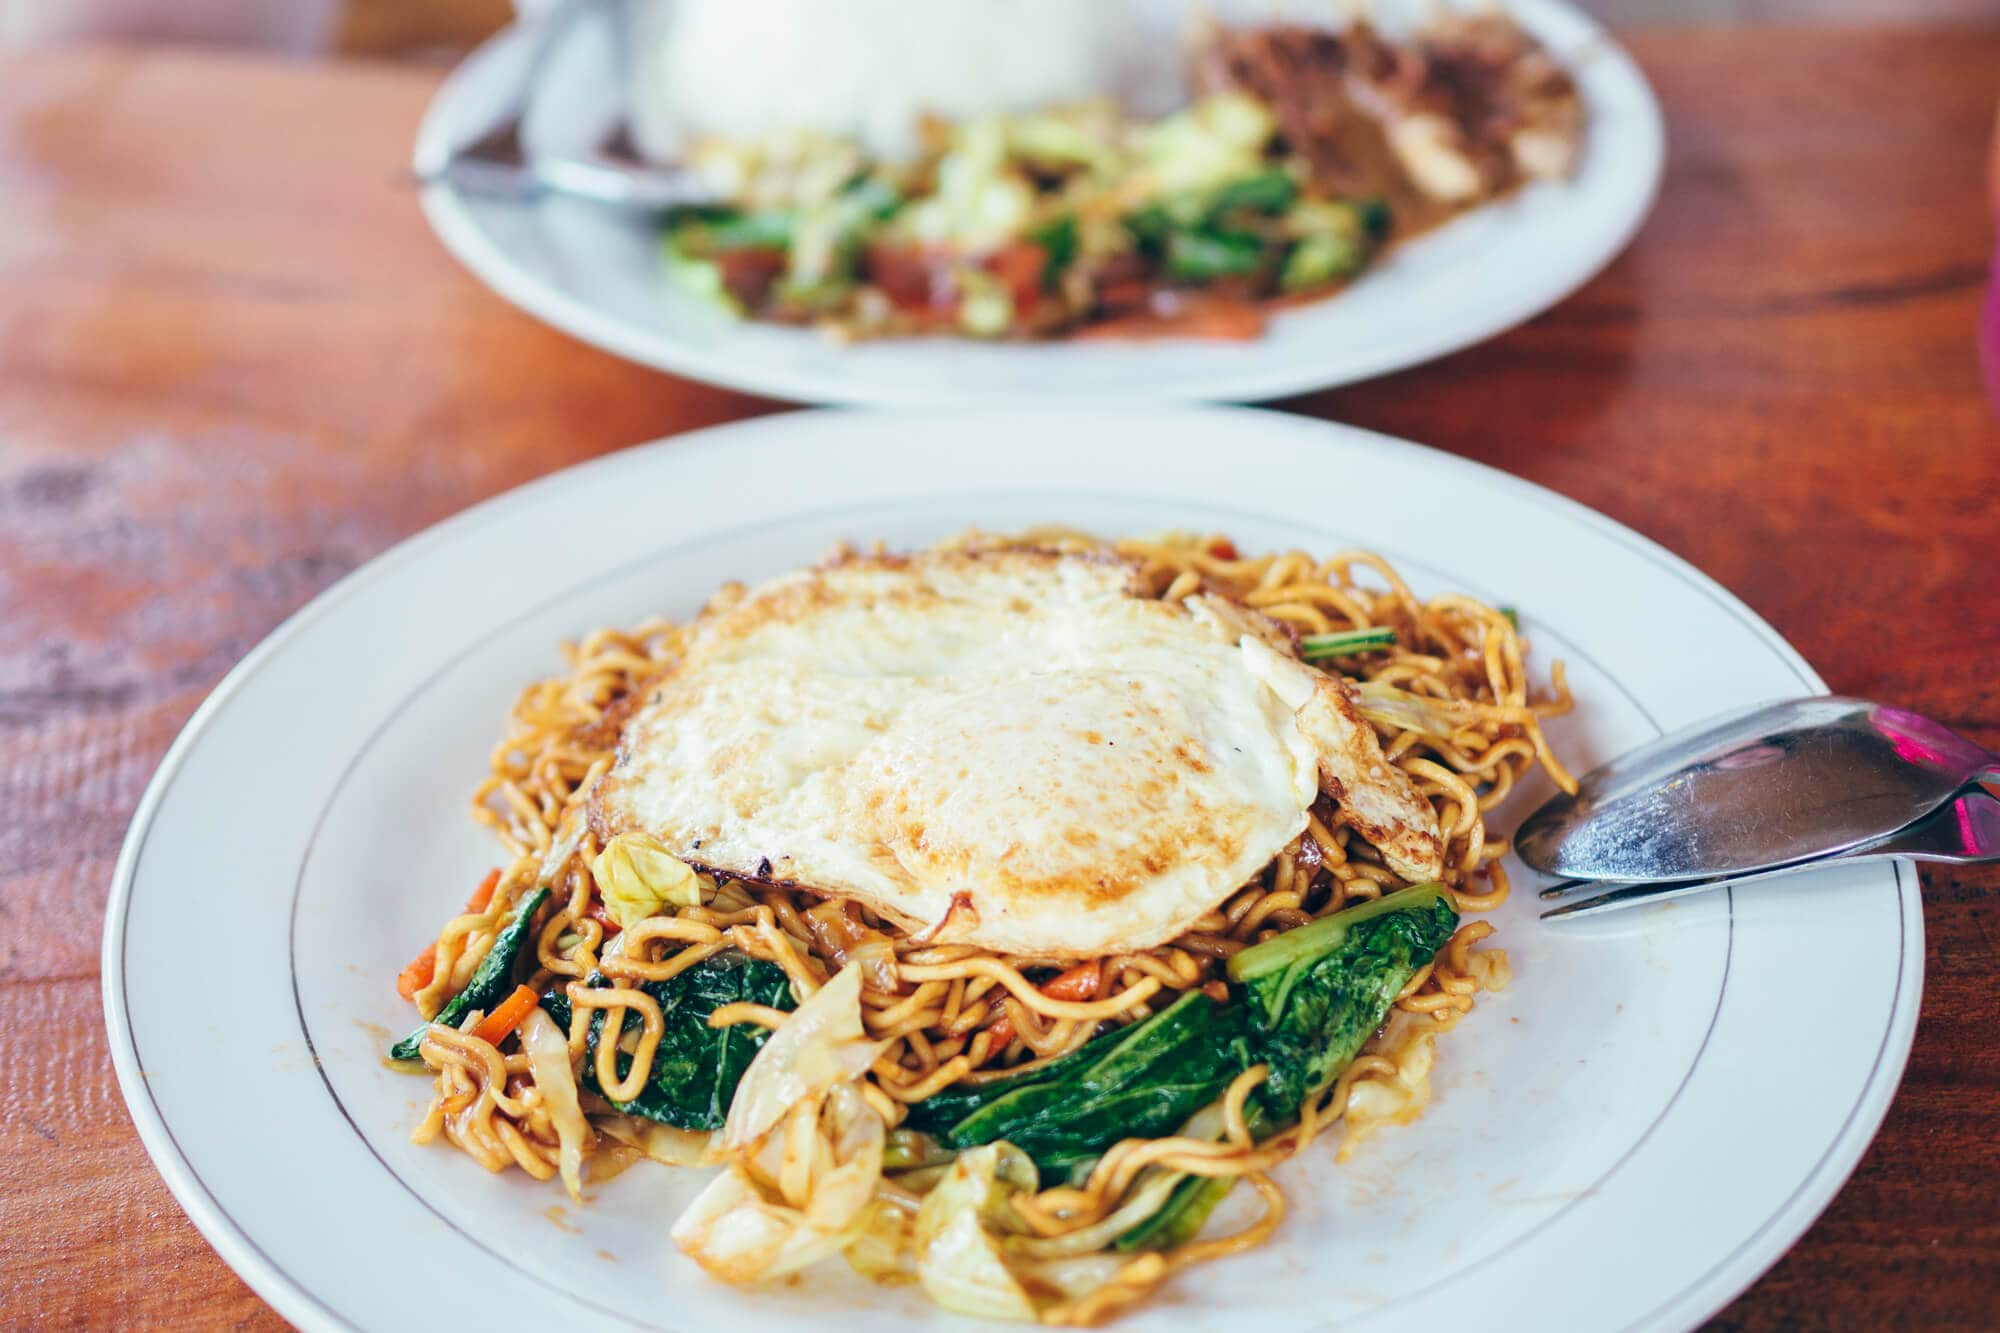 Mie Goreng (Indonesian fried noodles) in Nusa Penida